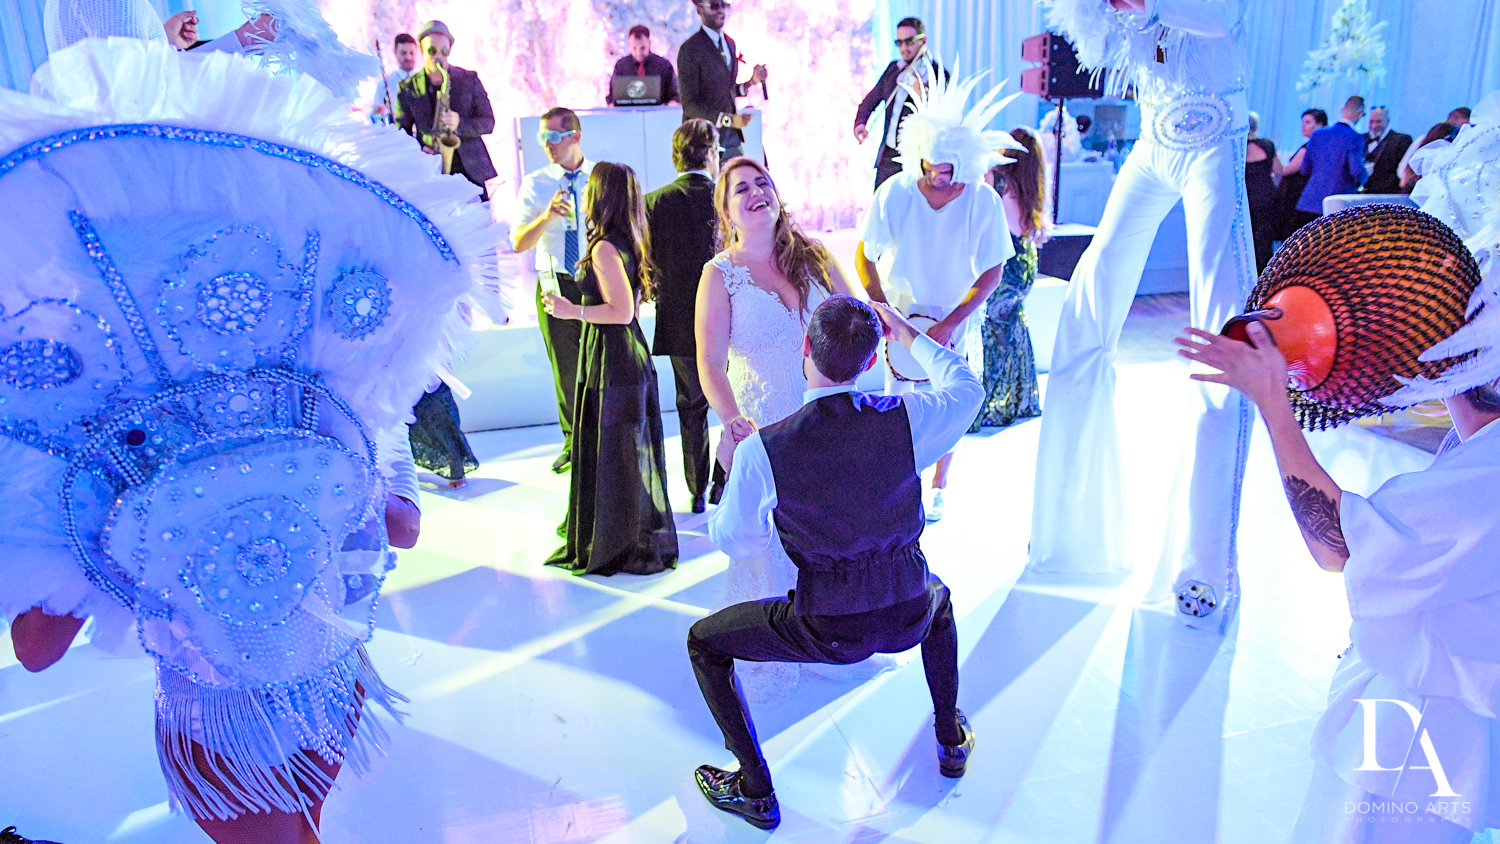 fun dancing at party Ultimate Events Wedding at Turnberry Isle Resort Miami by Domino Arts Photography